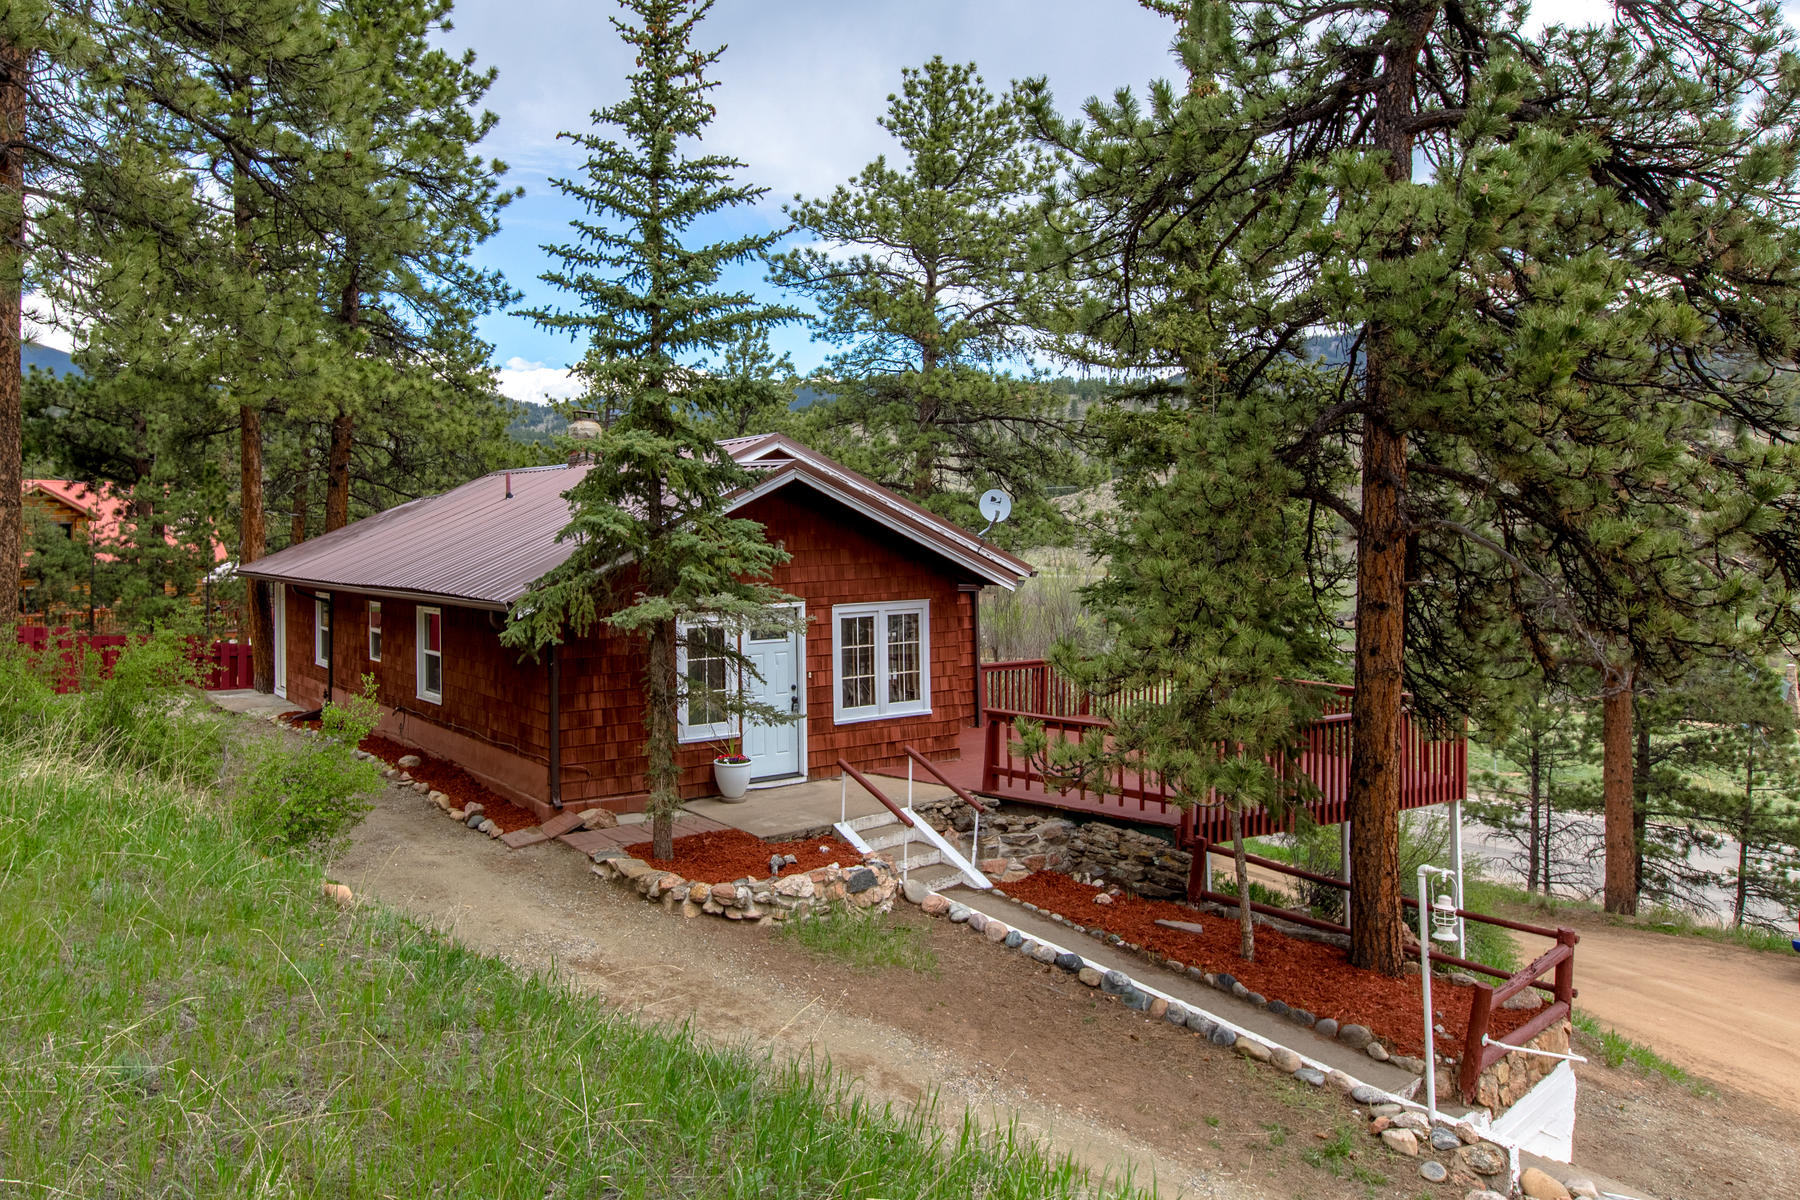 Single Family Homes for Sale at Charming Mountain Cabin with Views Overlooking the North Platte River Valley 31 West Shawnee Road, Shawnee, Colorado 80475 United States